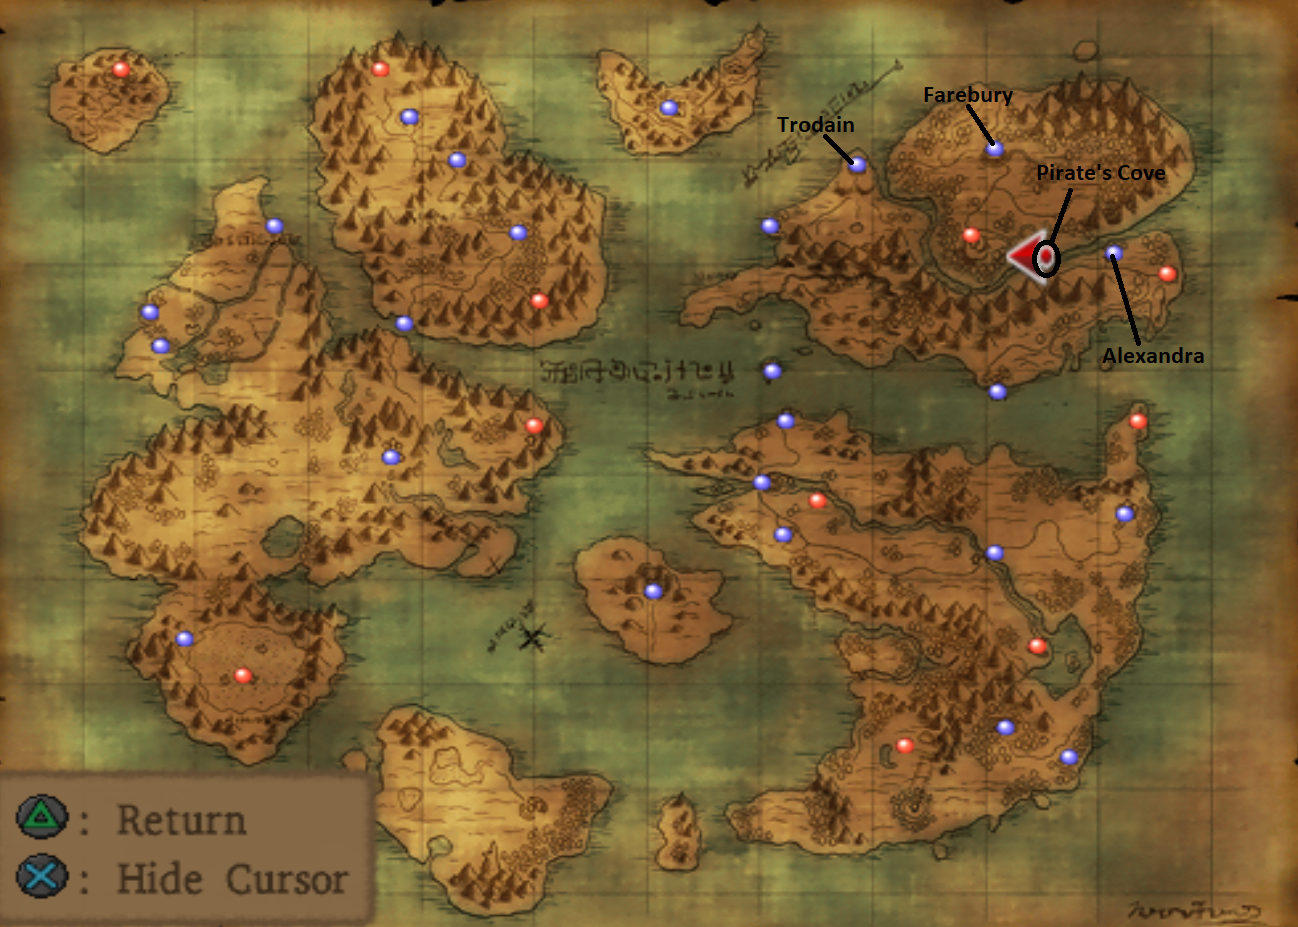 Map of Pirates Cove Location